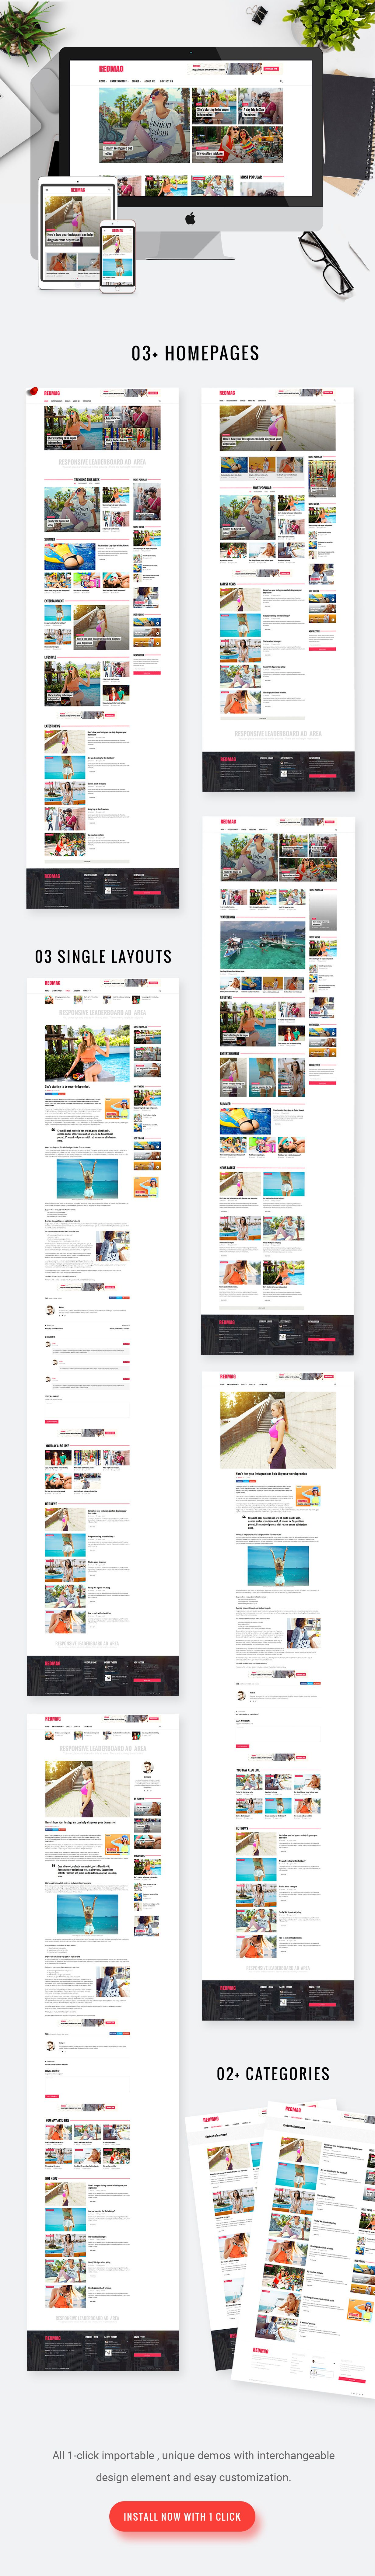 RedMag - AdSense Optimized & Entertainment News Theme | Wordpress ...